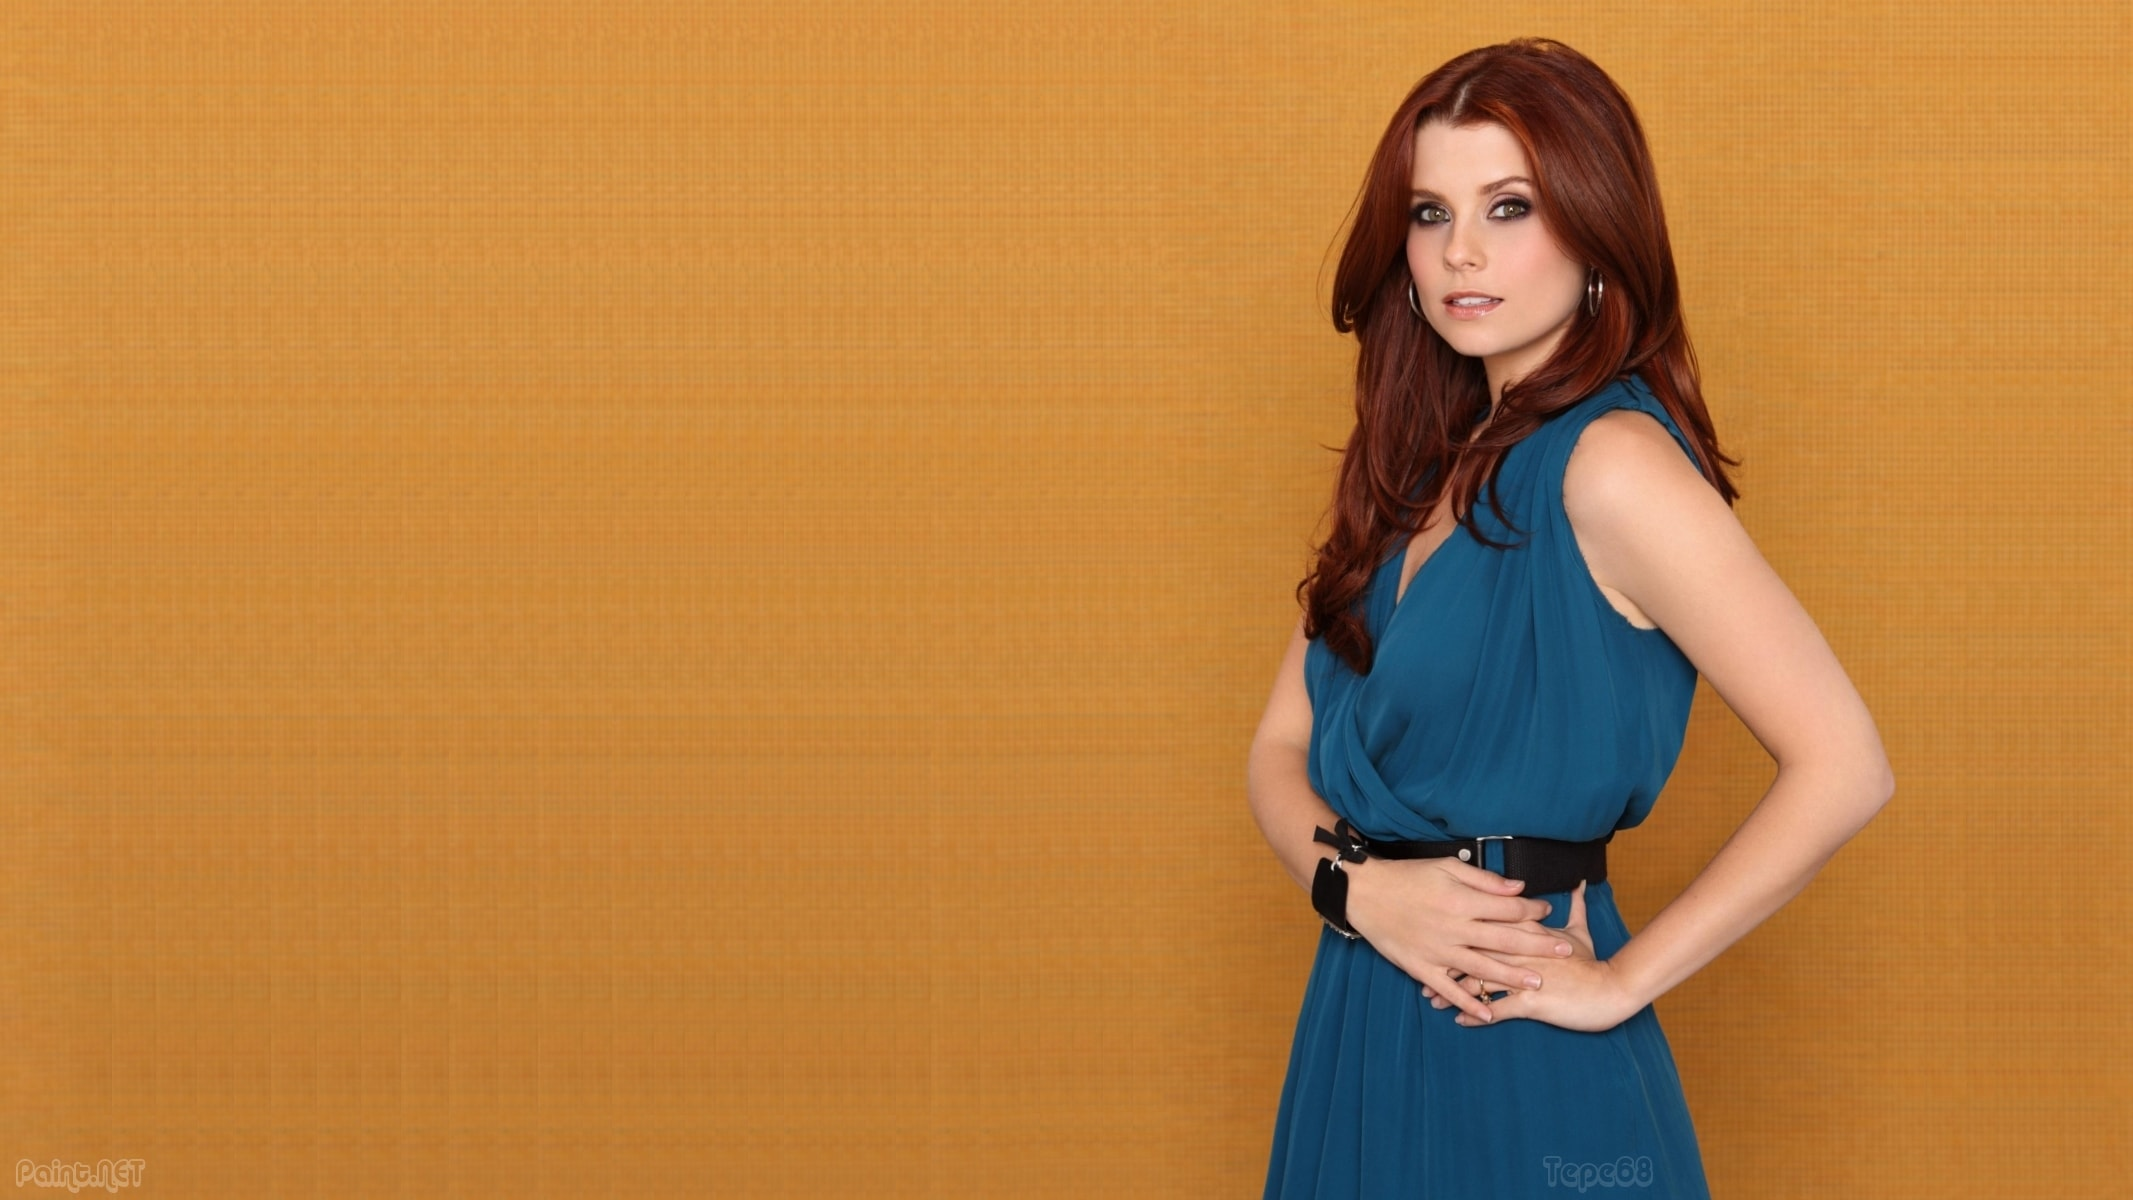 Joanna Garcia Desktop wallpaper